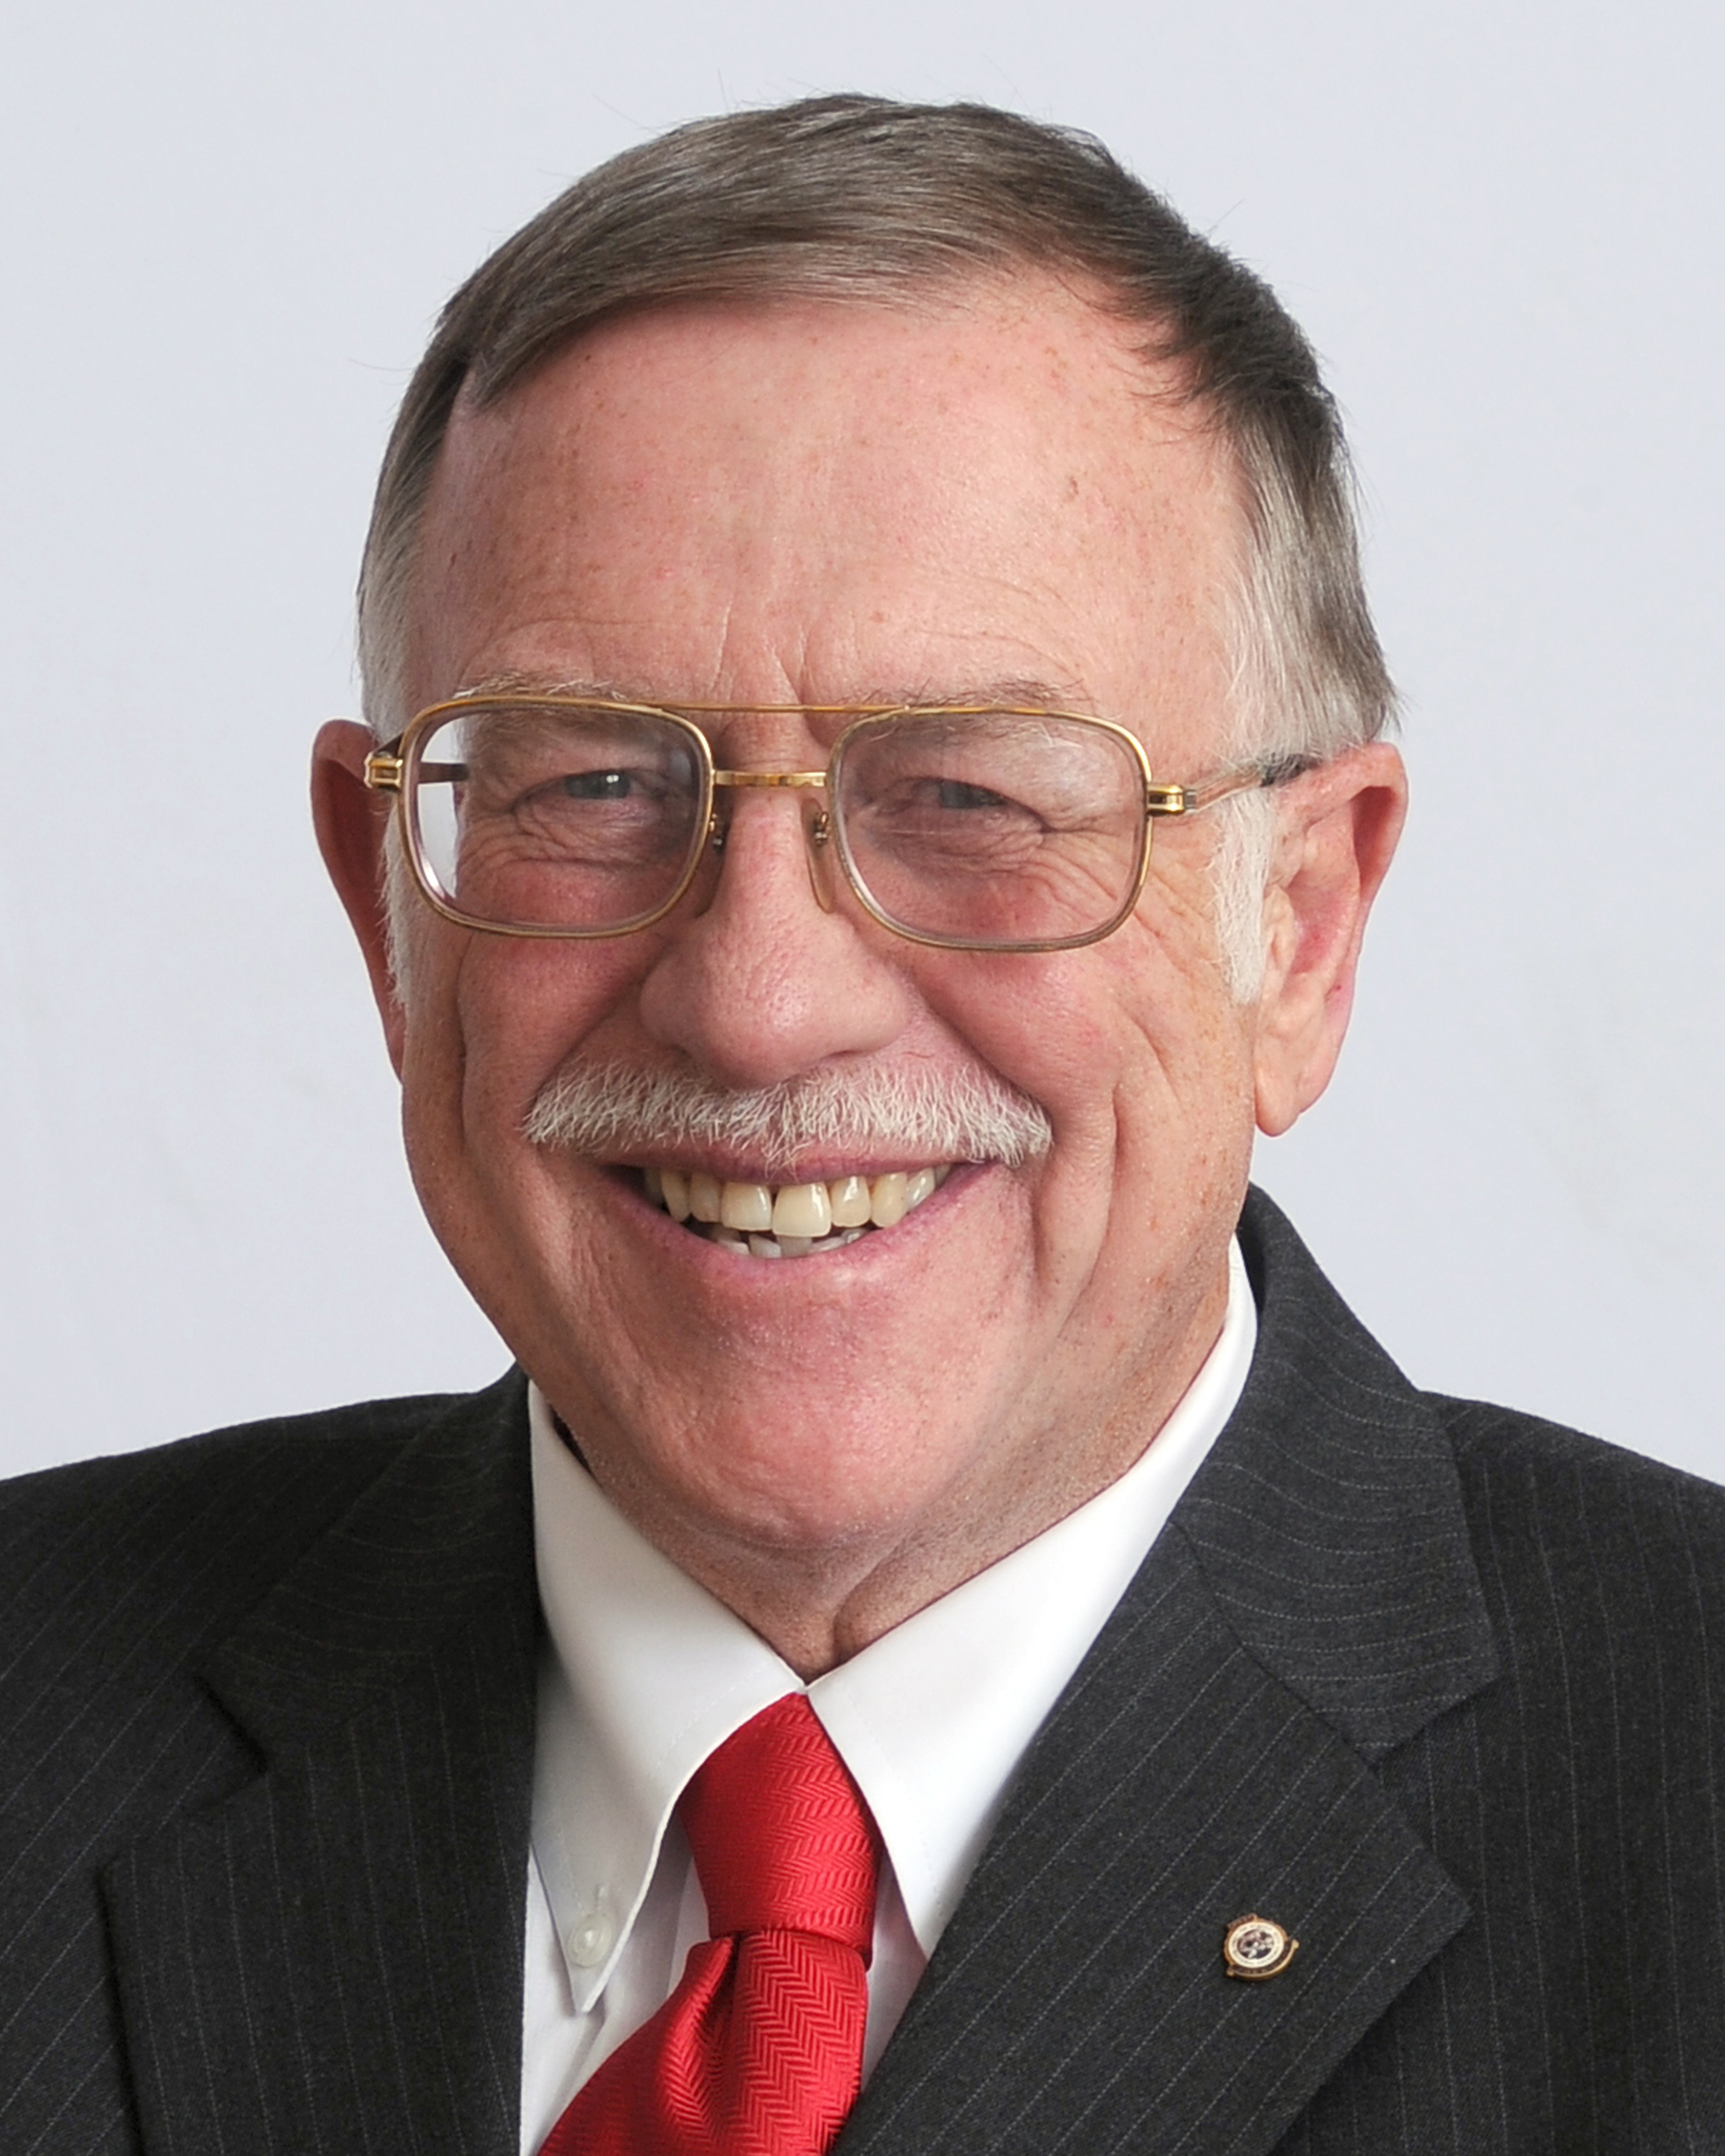 Treasurer John Schwab